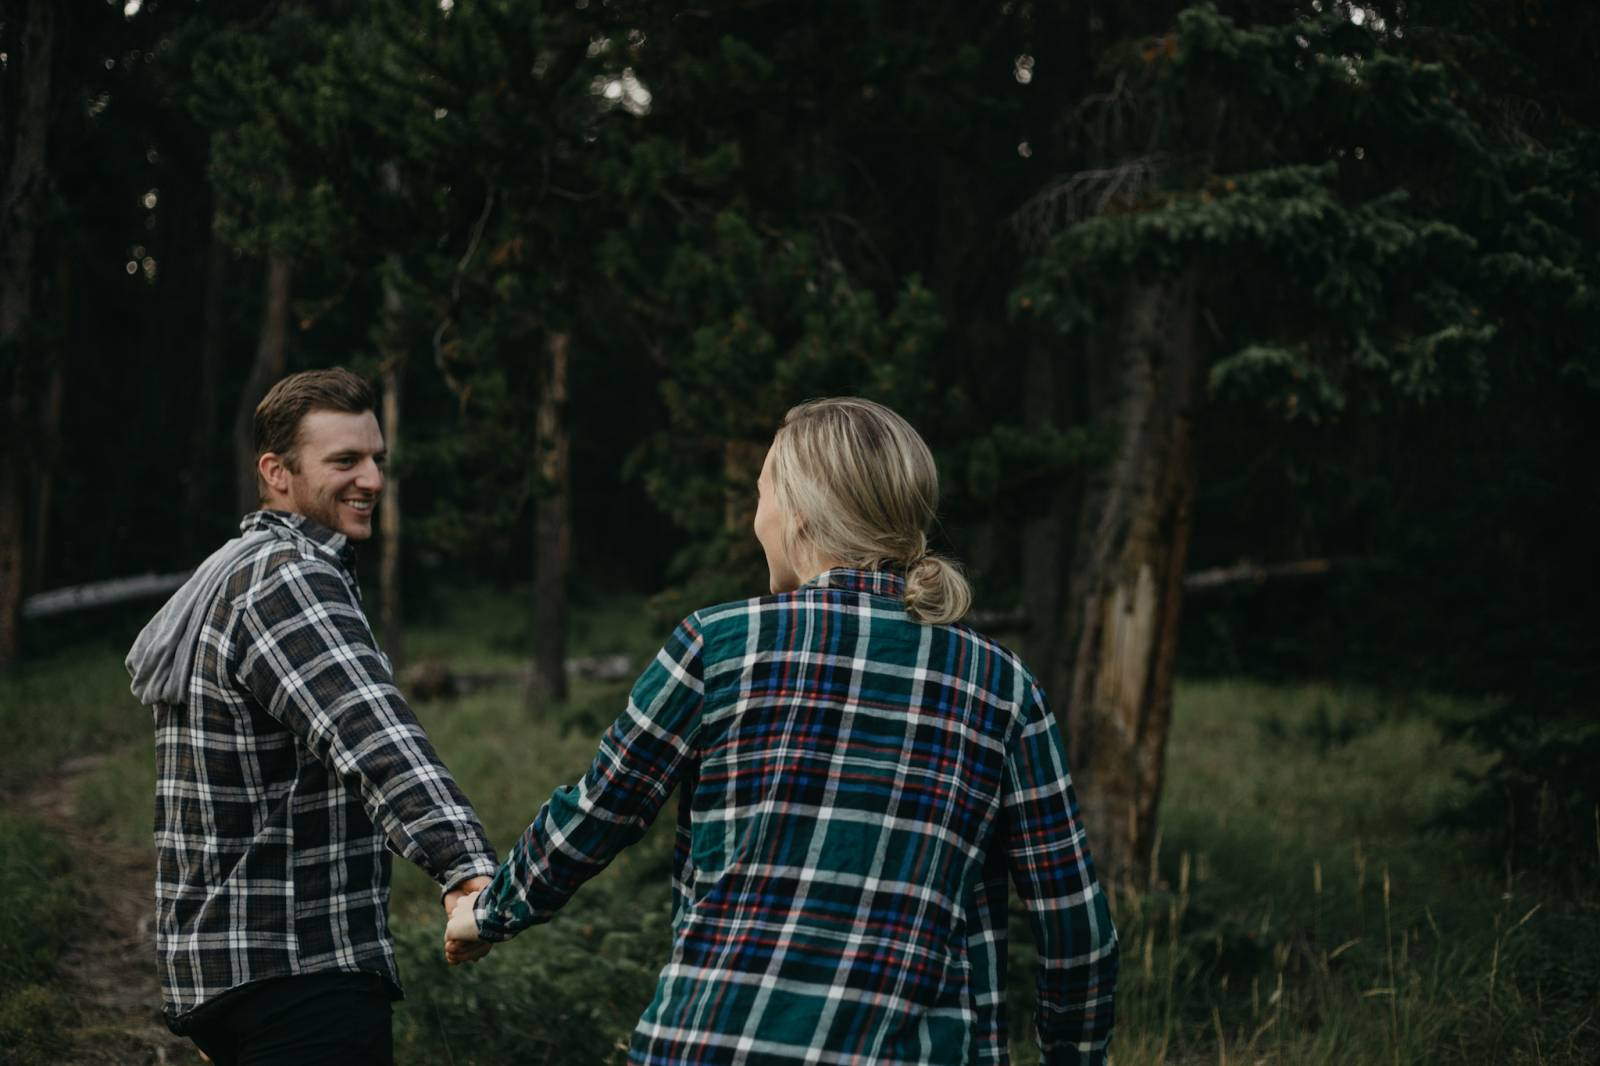 outdoor adventure engagement photo captured by Alberta wedding photographer Malorie Reiter | young c